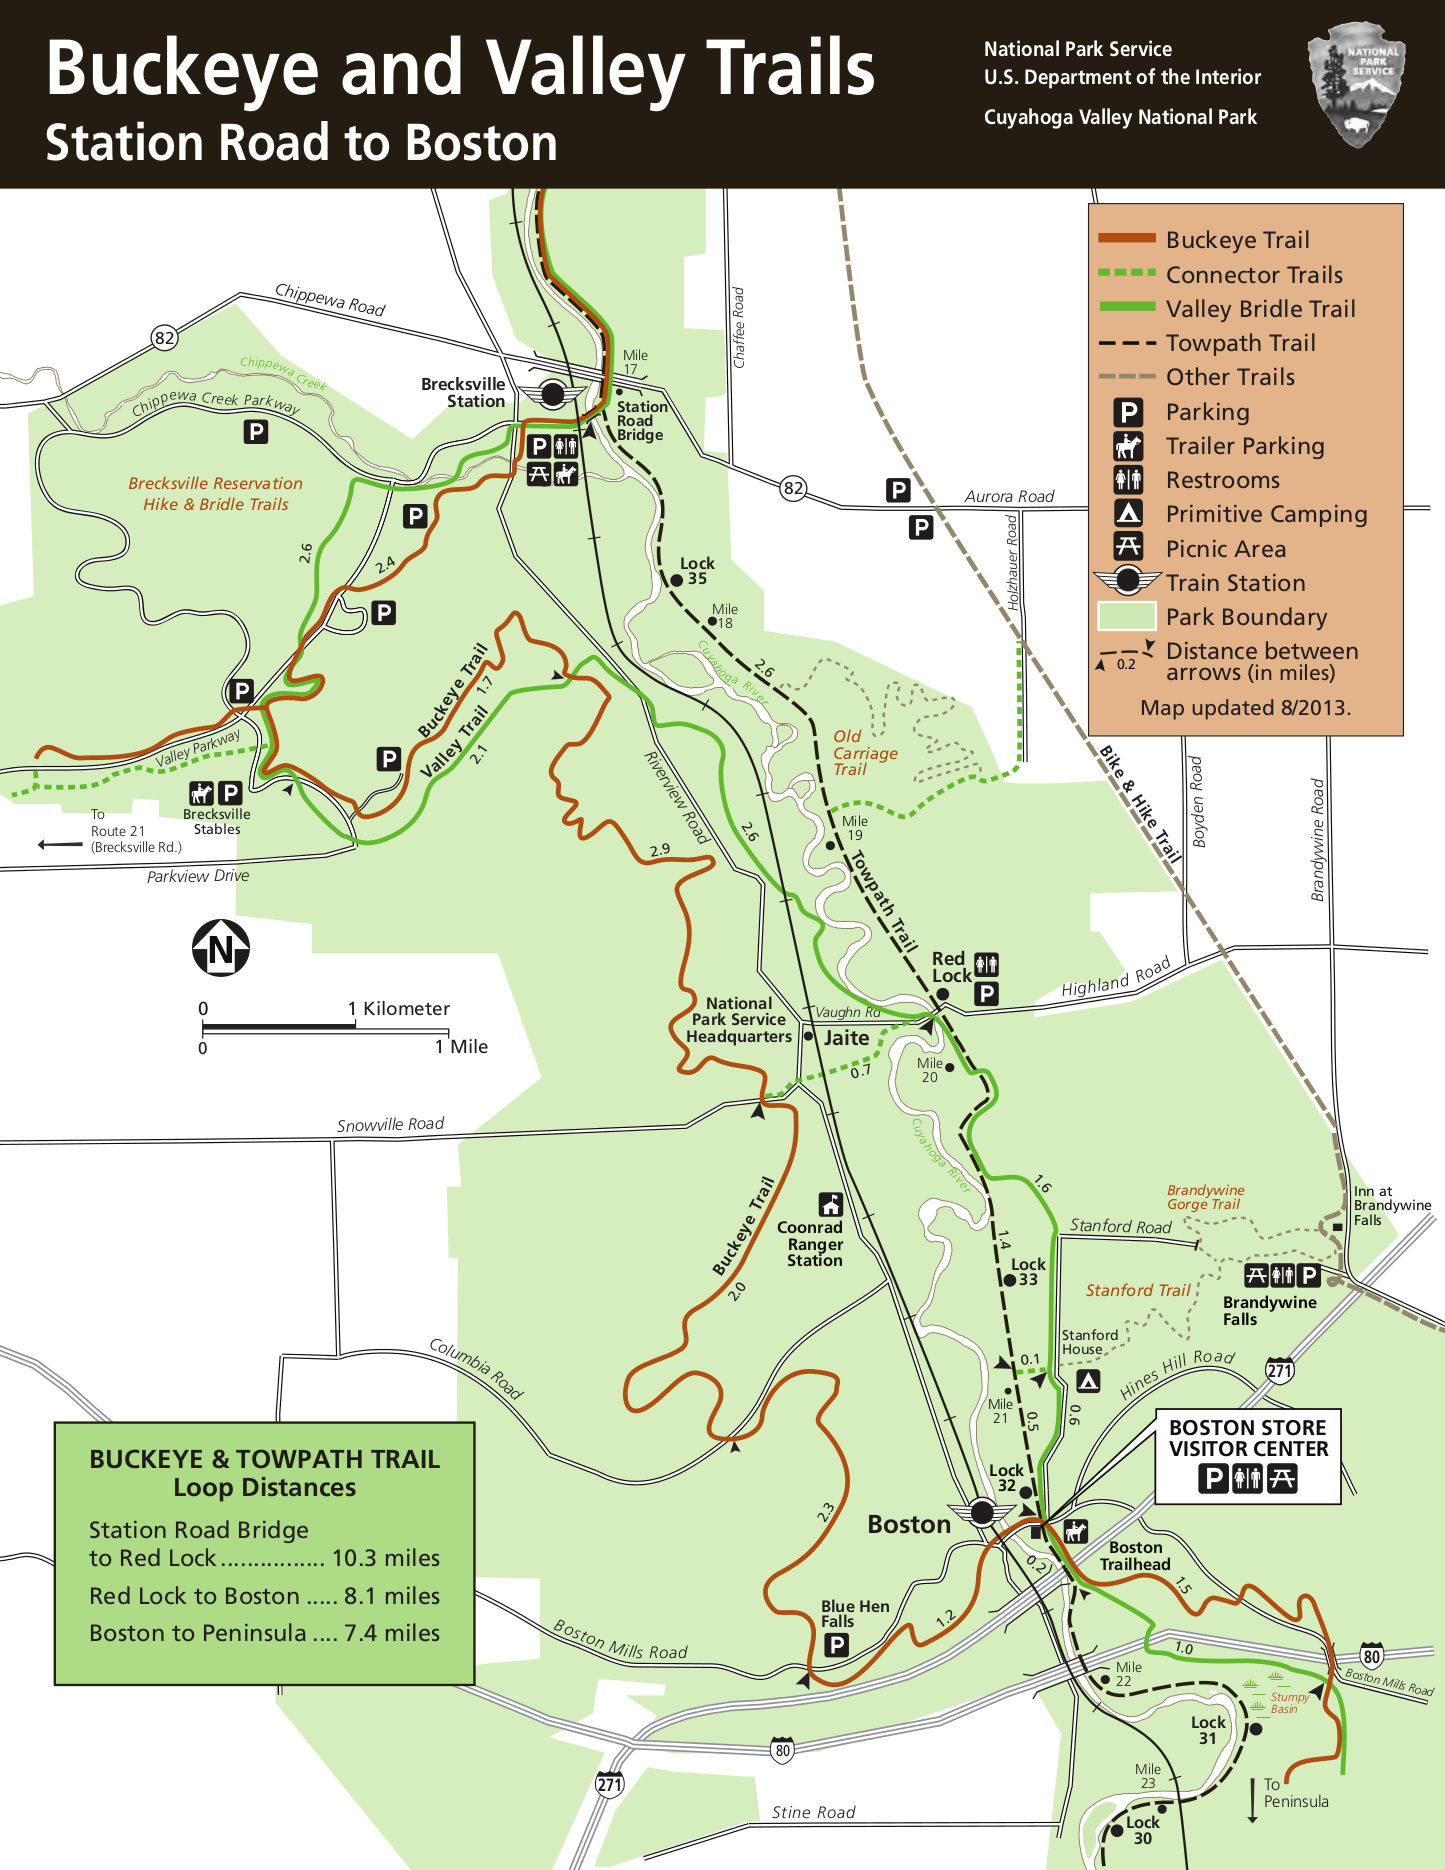 Cuyahoga Valley Maps | NPMaps.com - just free maps, period.